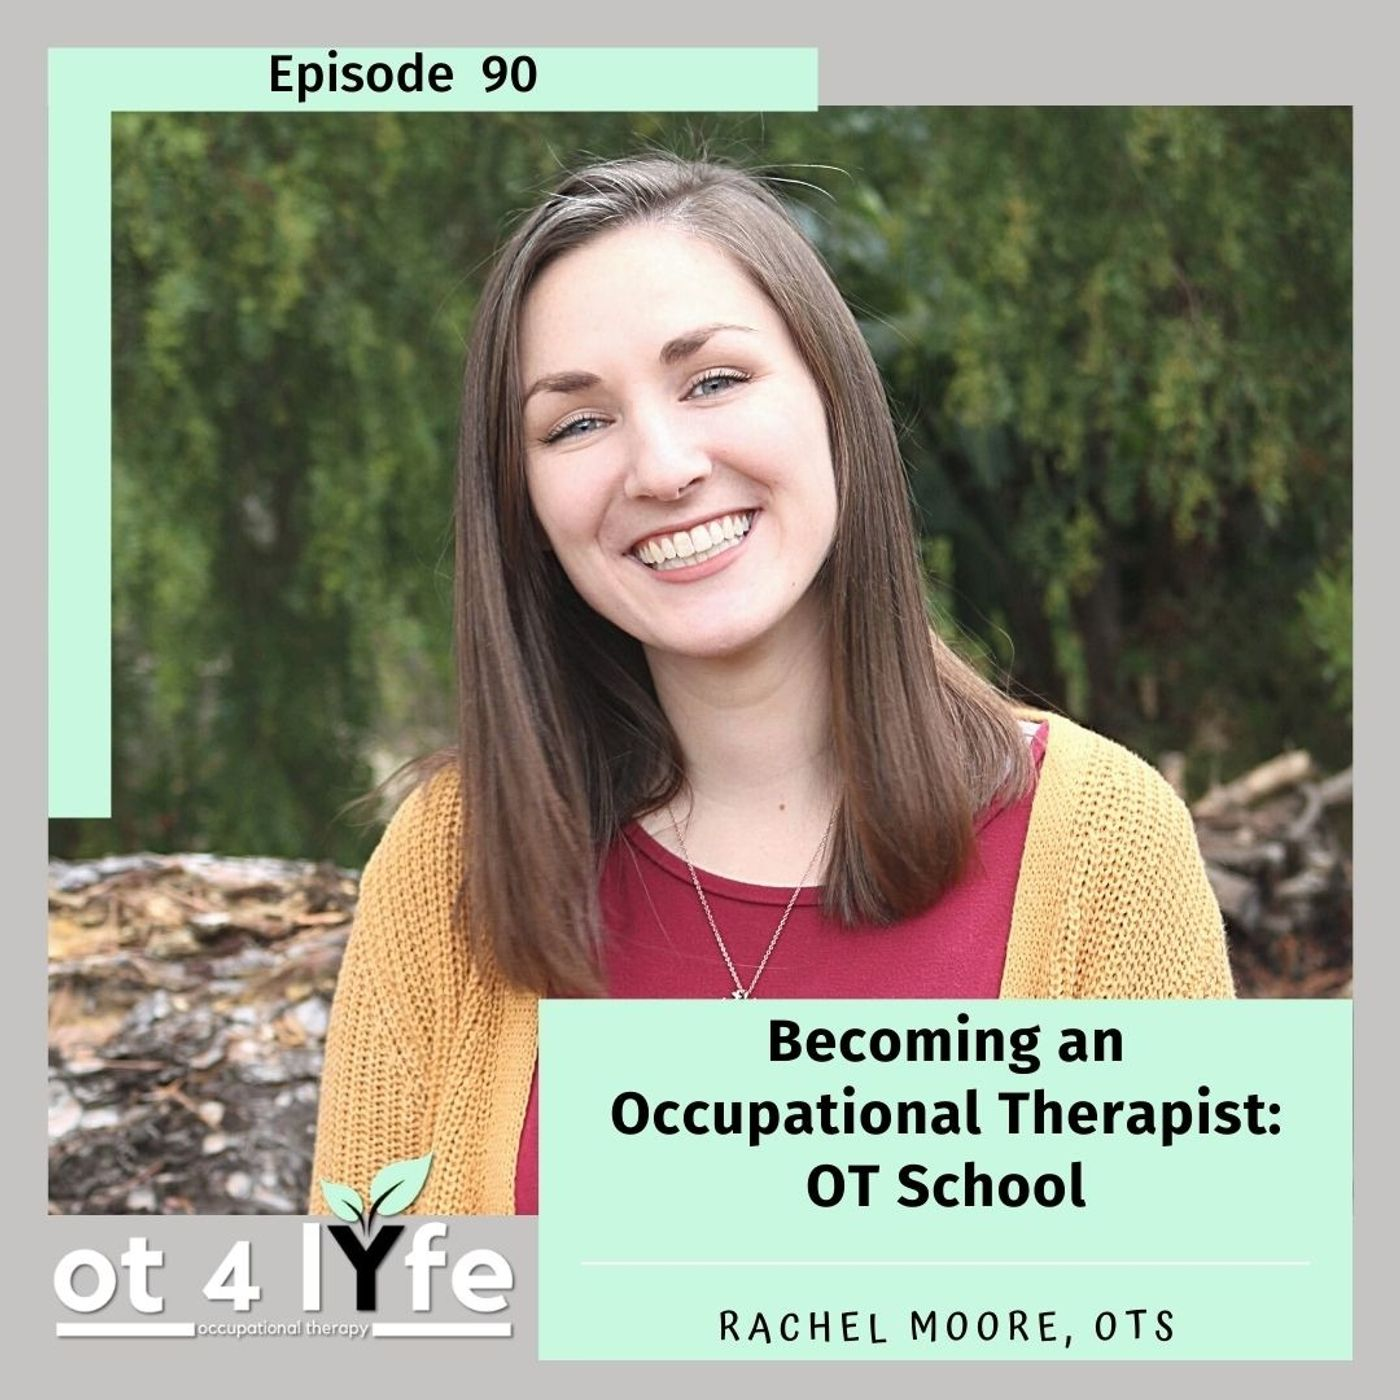 Becoming an Occupational Therapist: OT School